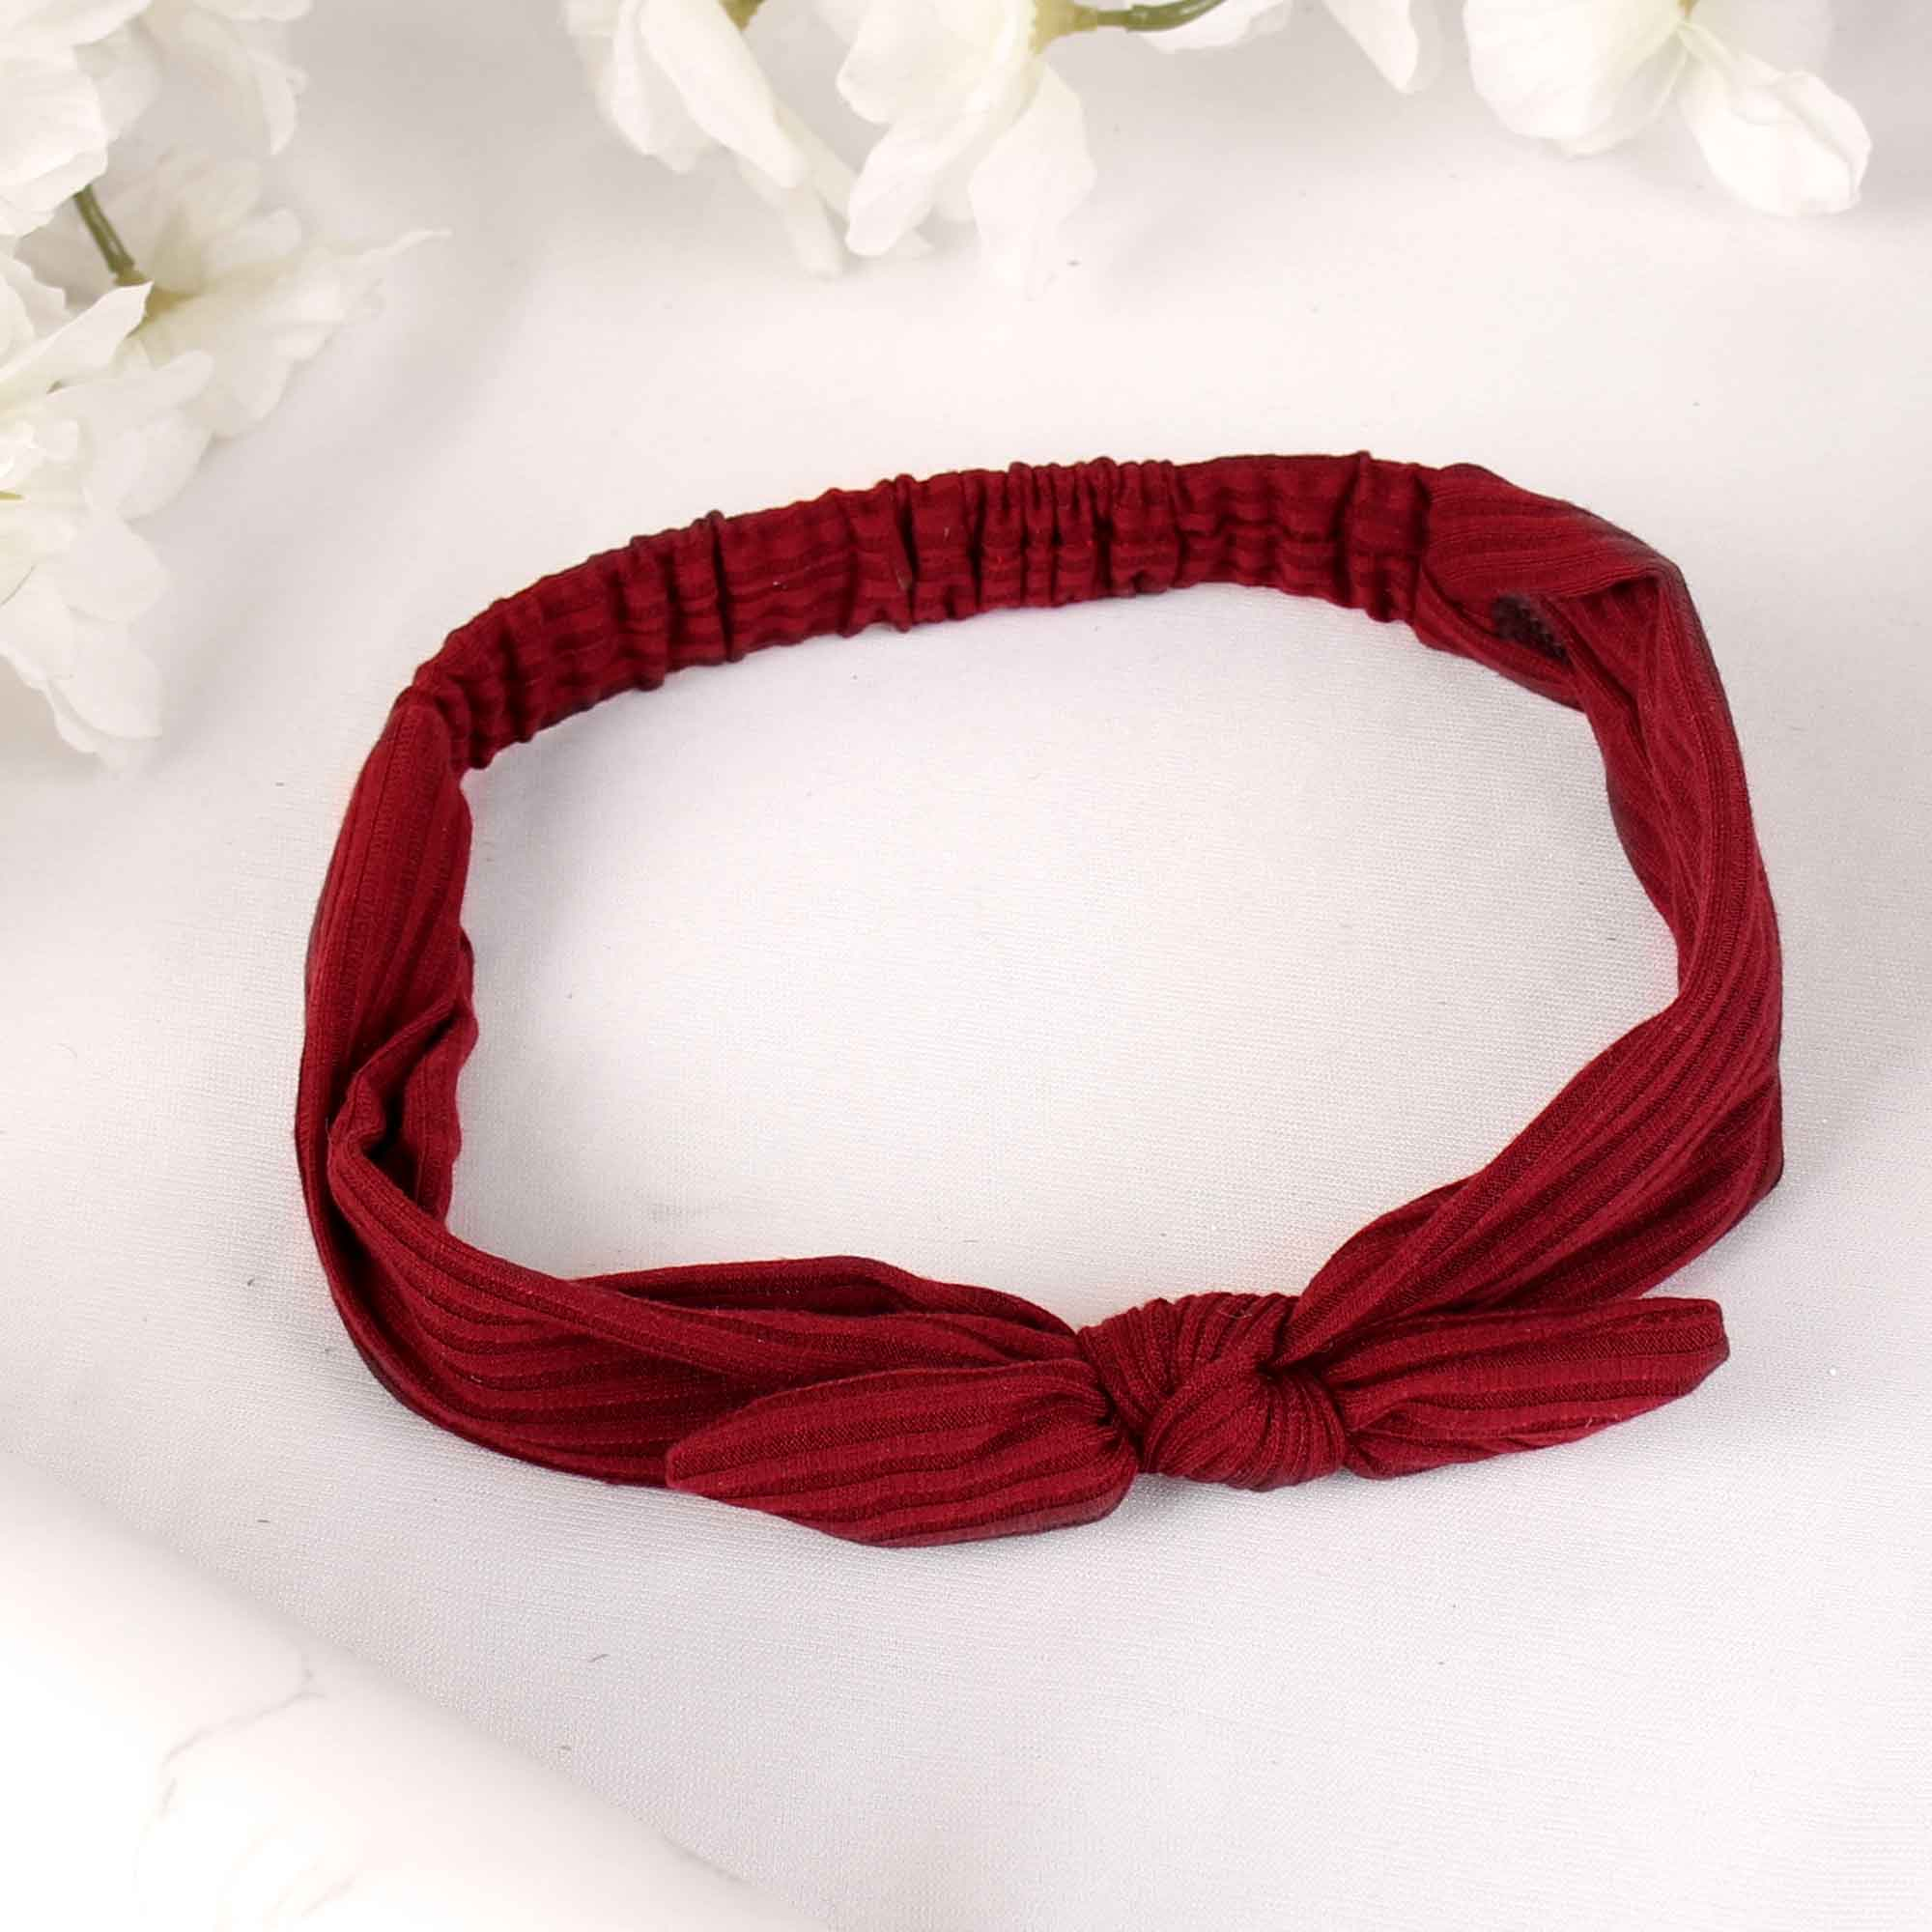 HairBand,The Mermaid's Fabric Hairband in Maroon - Cippele Multi Store